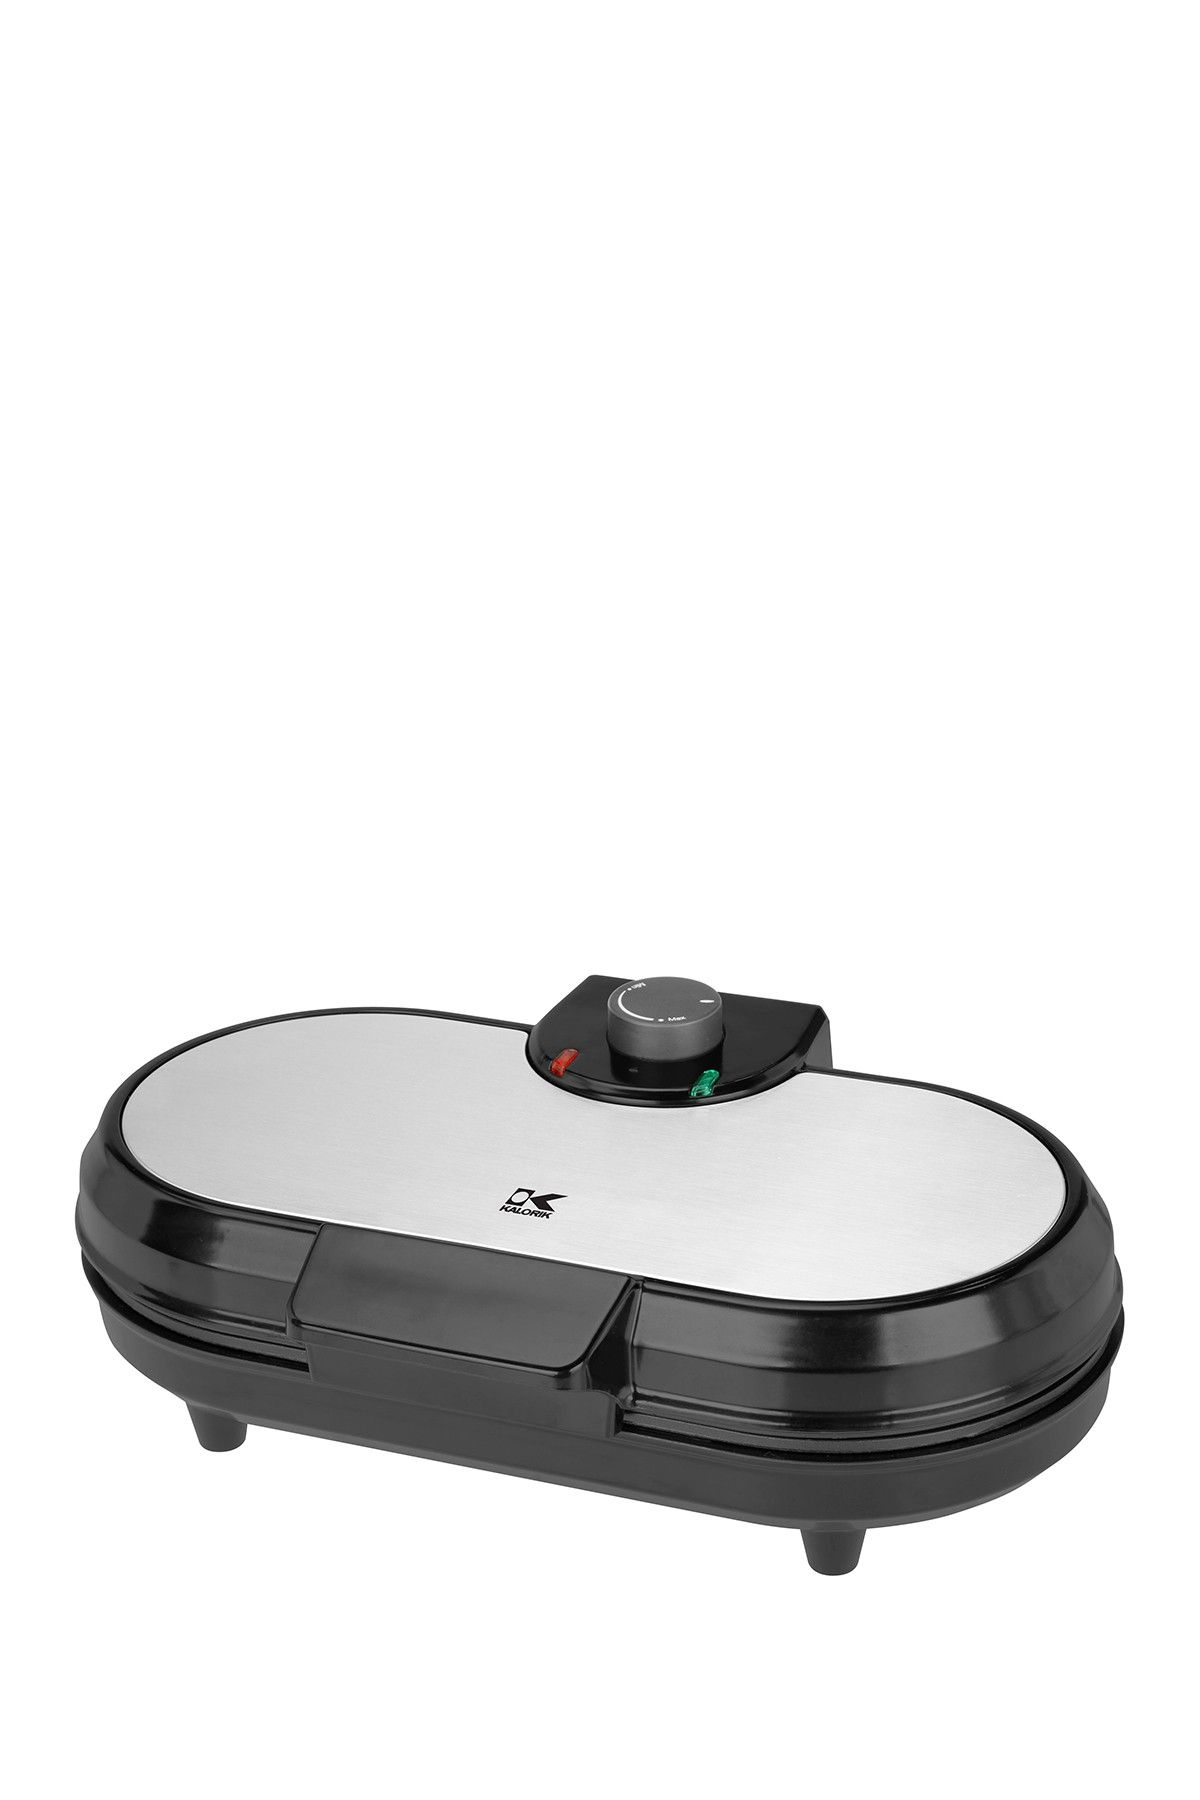 Kalorik Black And Stainless Steel Double Belgian Waffle Maker Double Belgian Waffle Maker Belgian Waffle Maker Waffles Maker